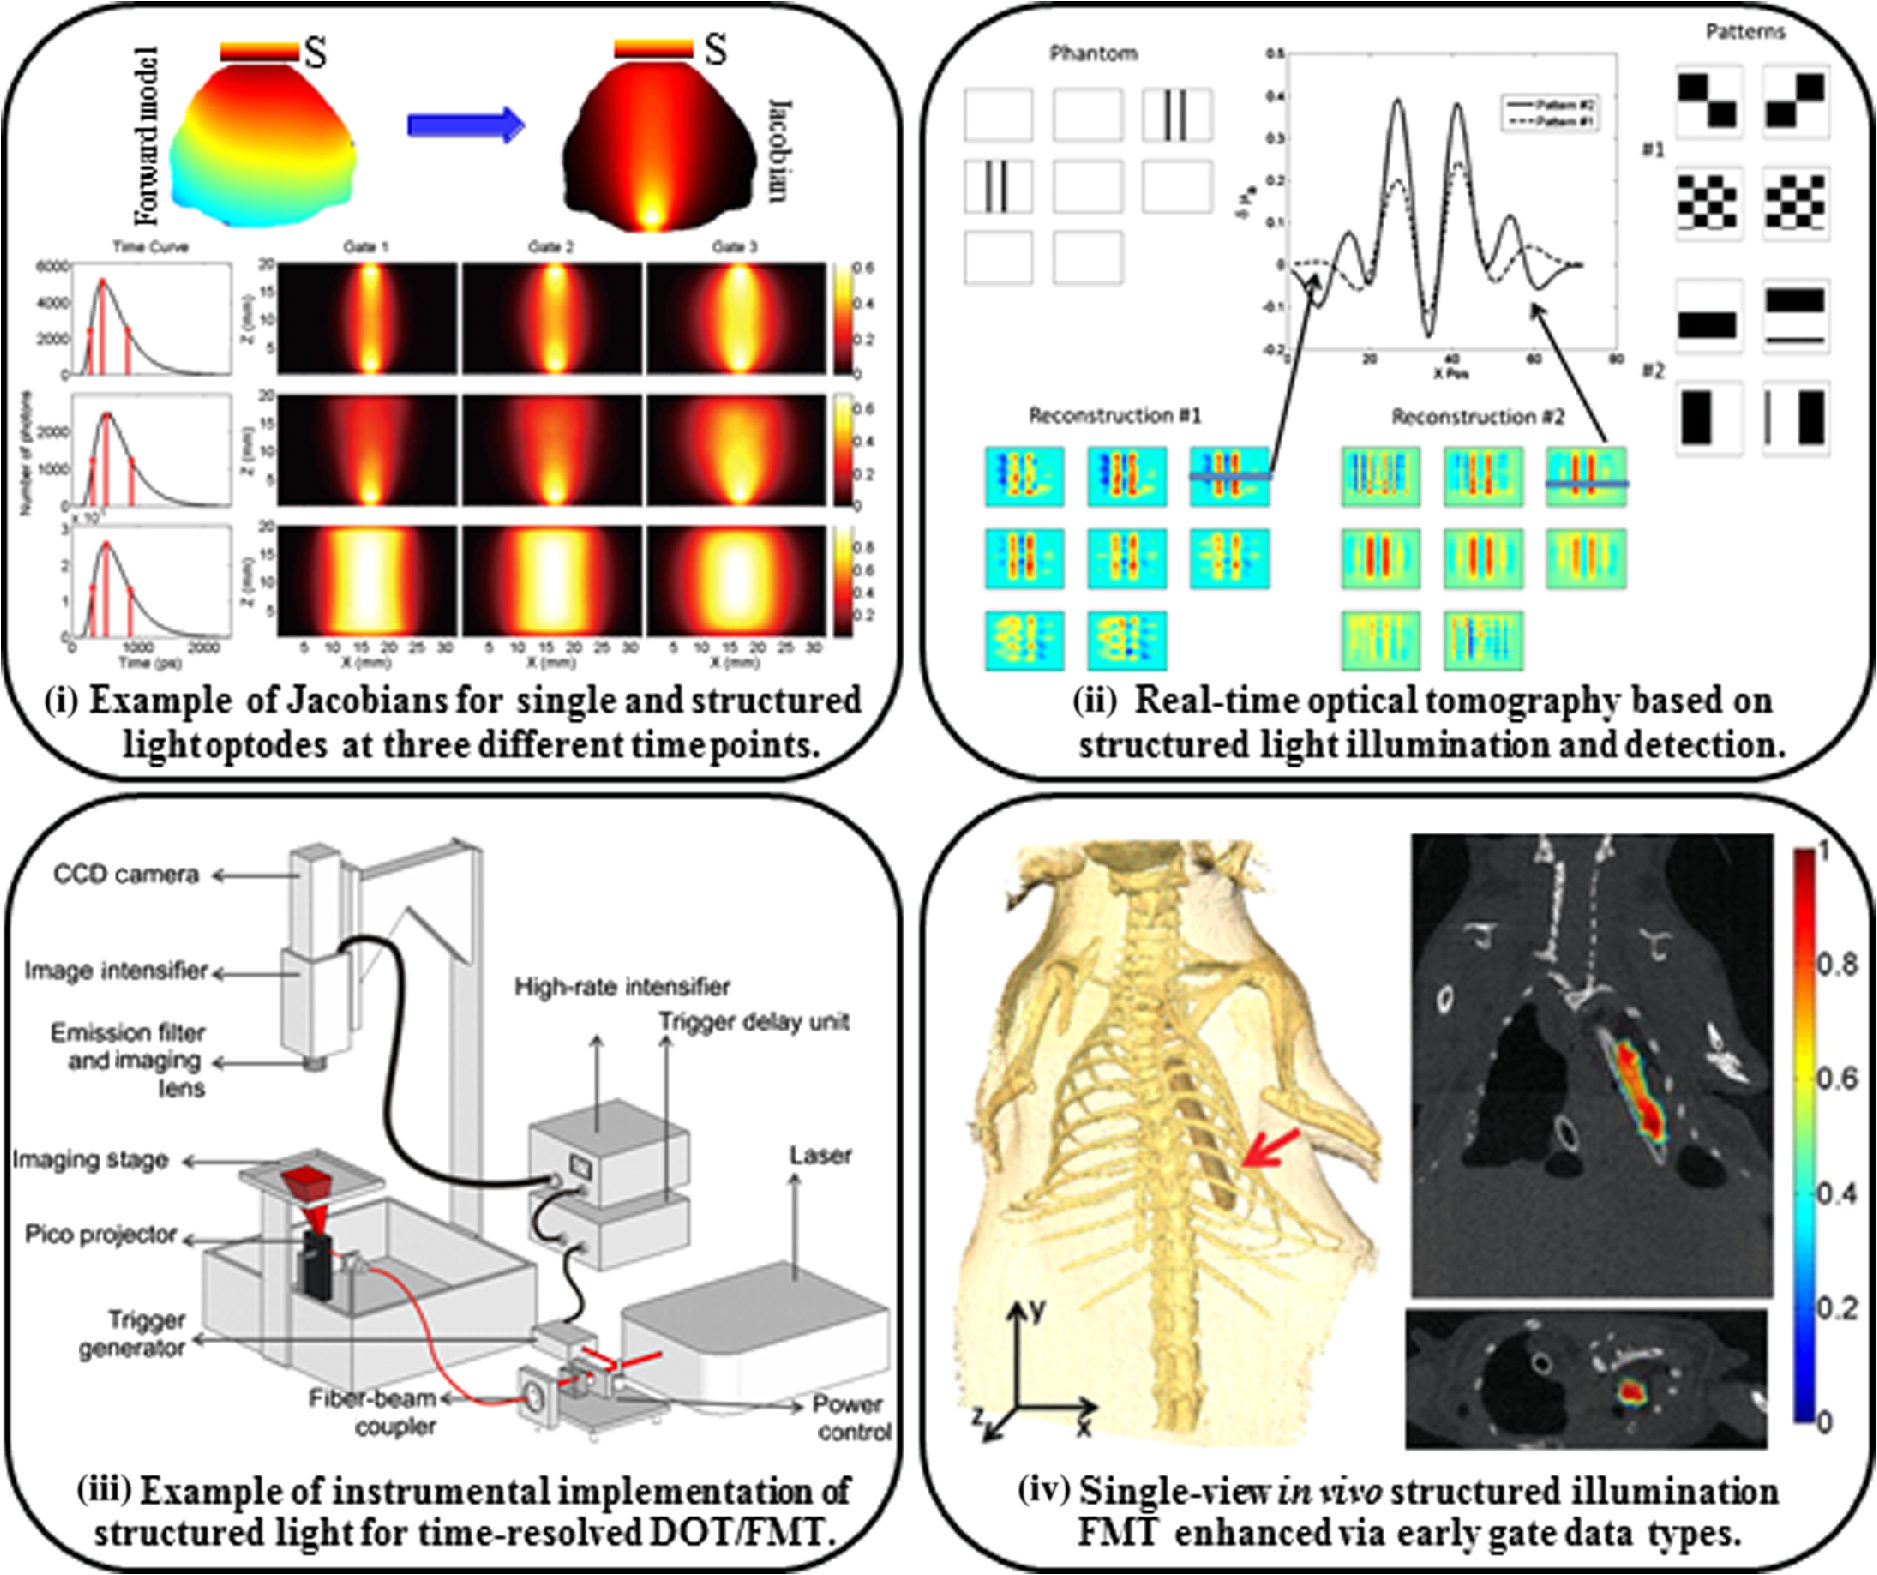 Review of structured light in diffuse optical imaging